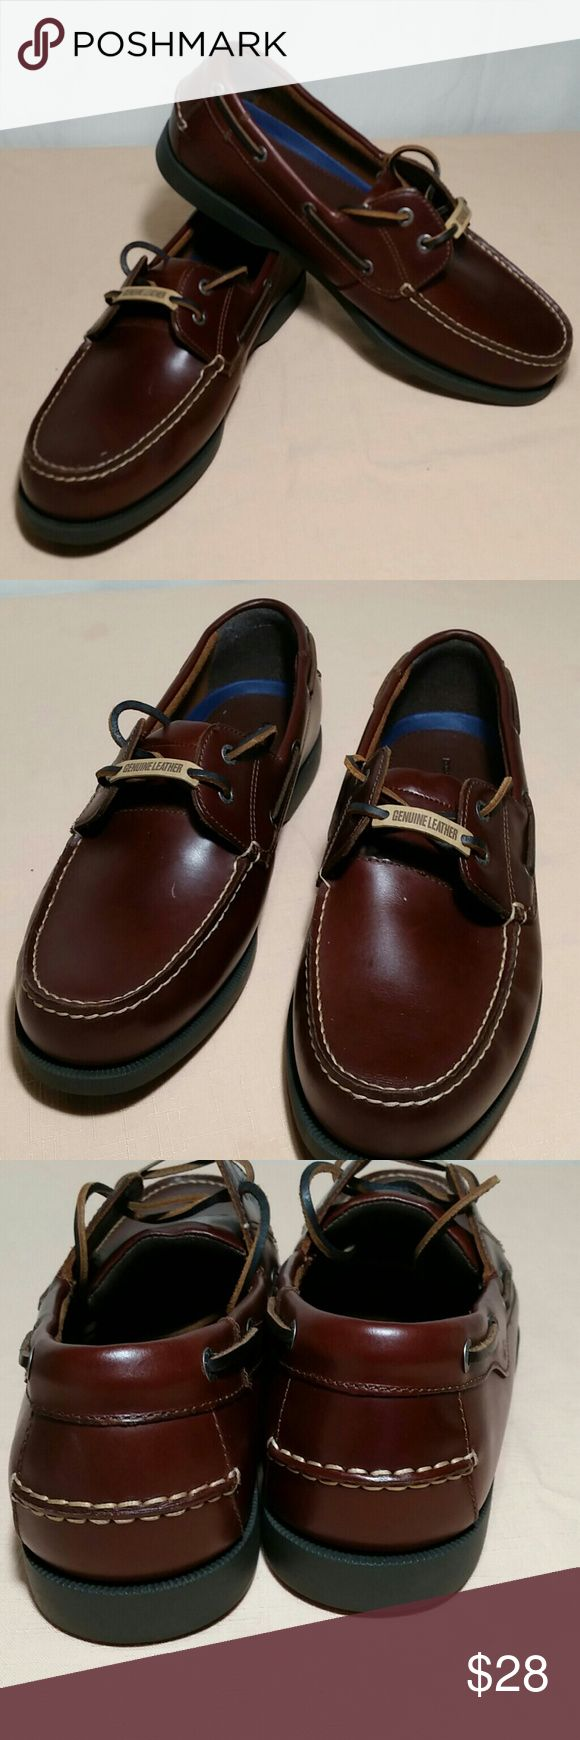 Dockers Boat Shoes Brown Size 11 Handsome DOCKERS brown boat shoes.  This pair of boat shoes, are a size 11.  This pair of DOCKERS Boat  Shoes are in excellent like new condition. Dockers Shoes Boat Shoes